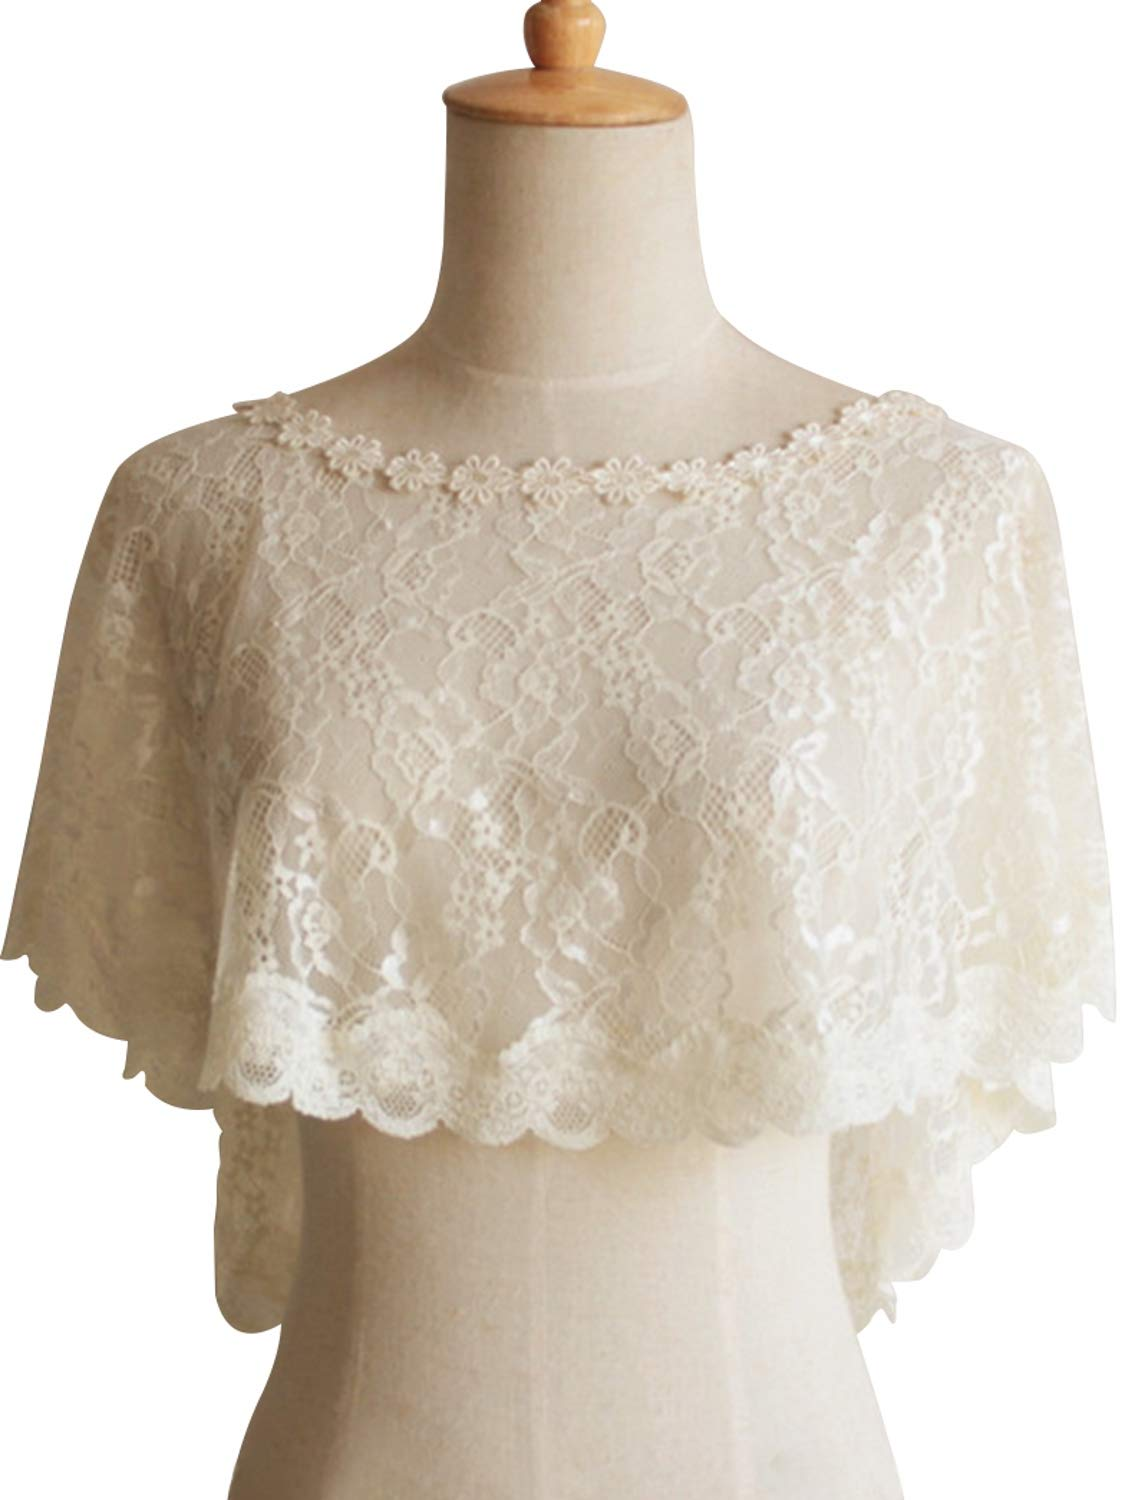 Women's Lace Tulle Shawl Wrap Evening Cap for Bride Bolero Shawls,Champagne by MisShow (Image #1)